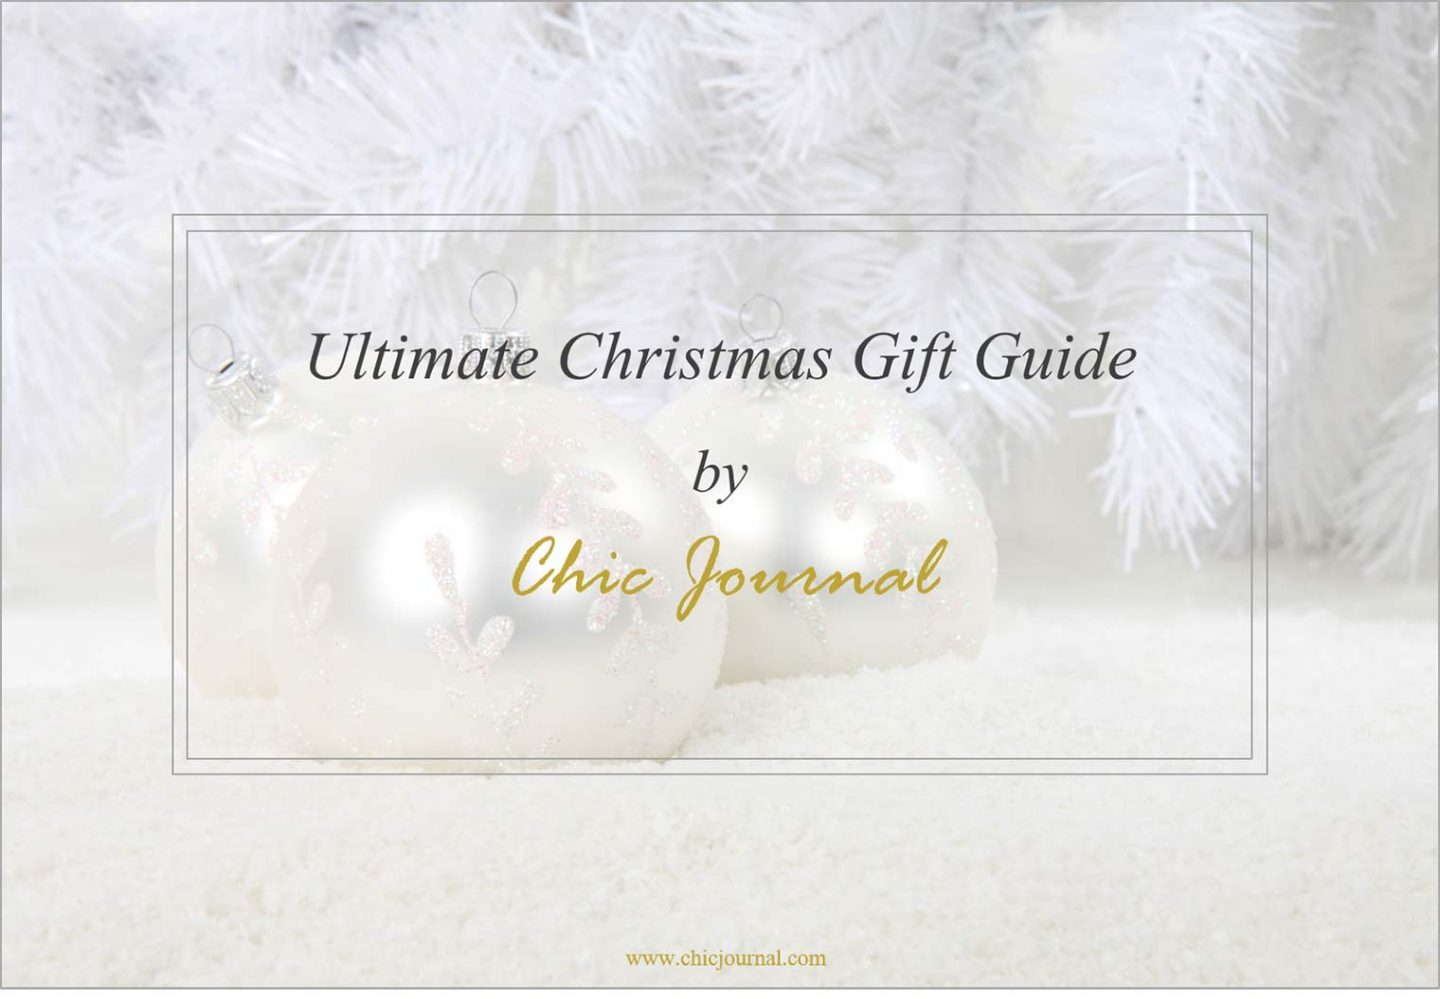 The Christmas gift. Your guide to best presents is finally here